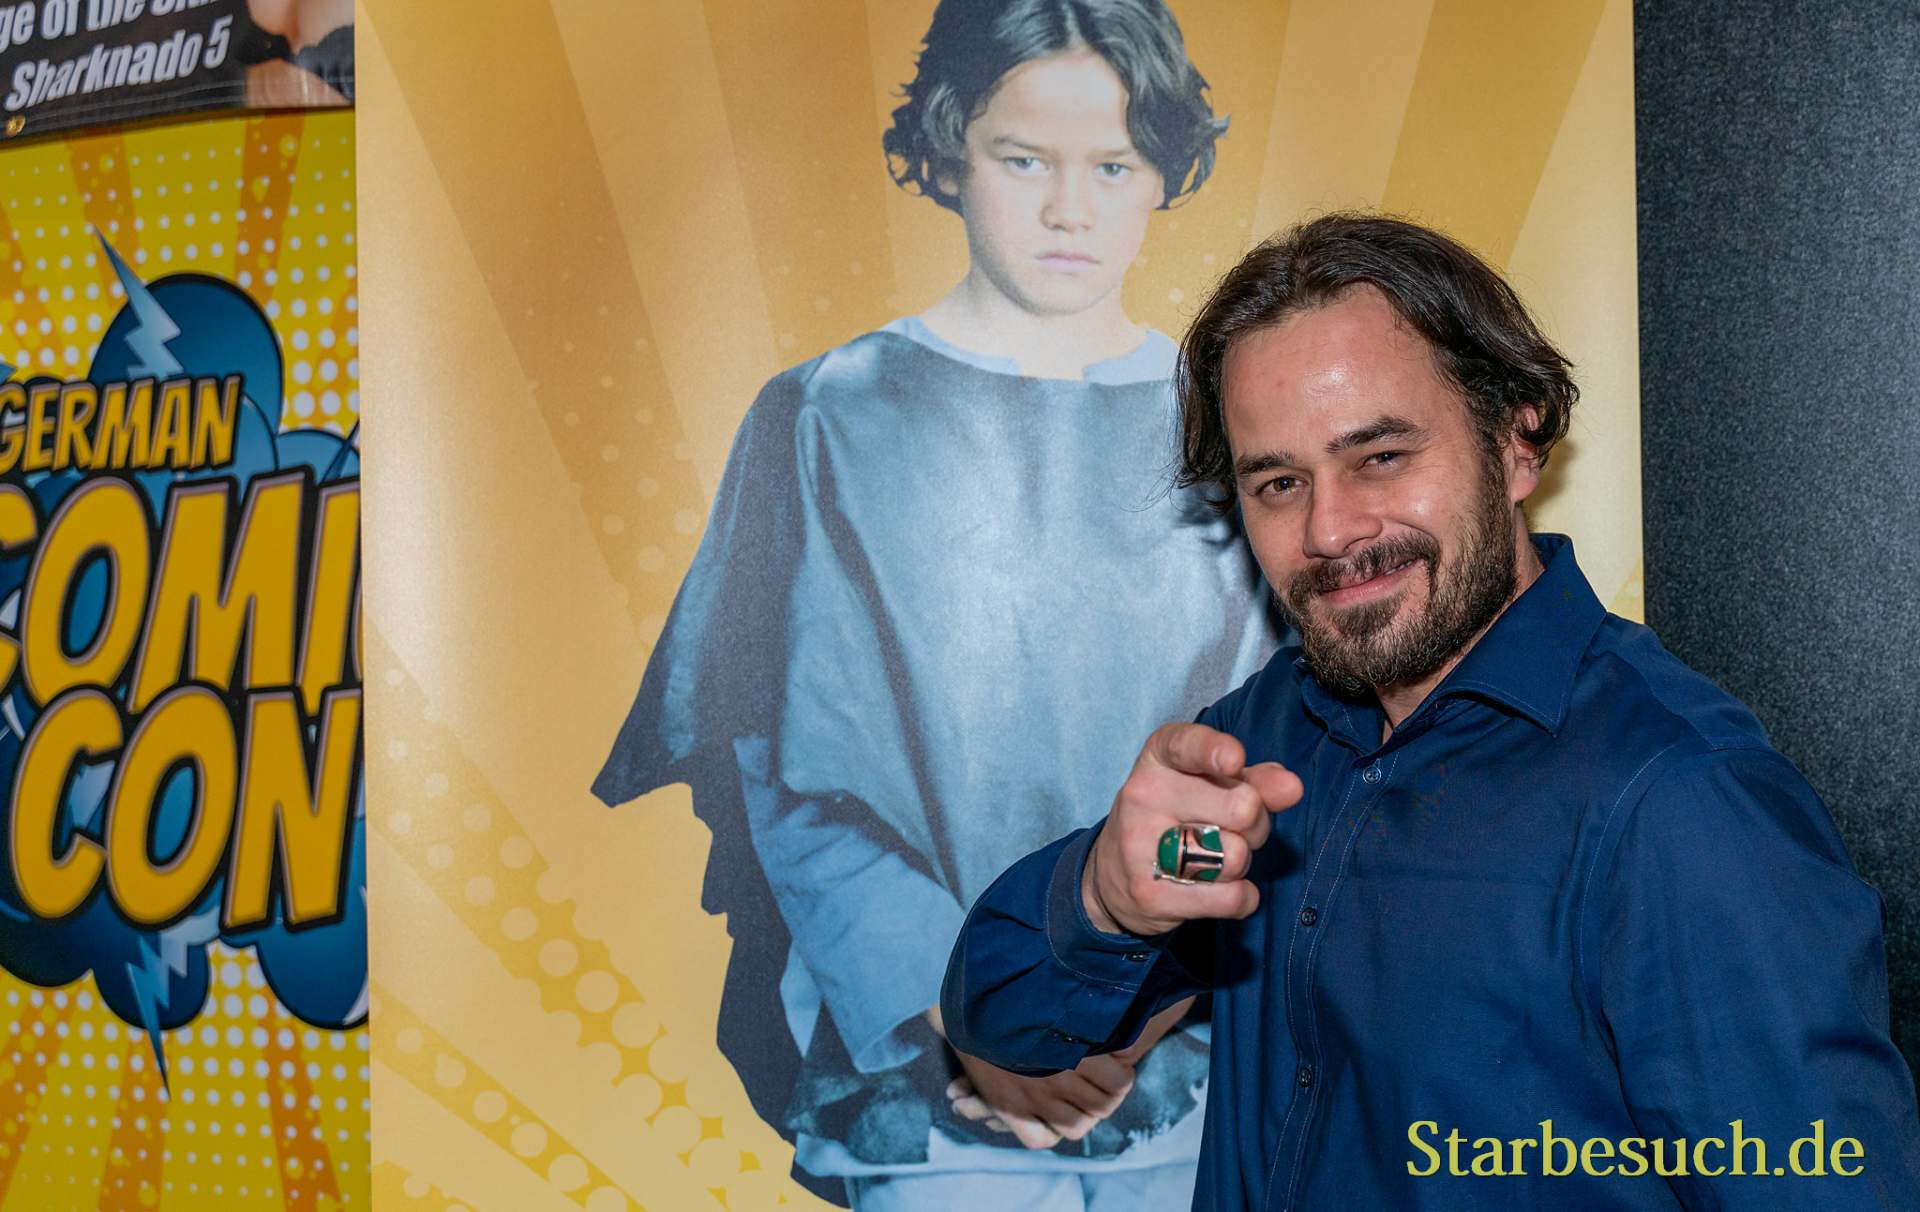 DORTMUND, GERMANY - December 8th 2019: Daniel Logan at German Comic Con Dortmund